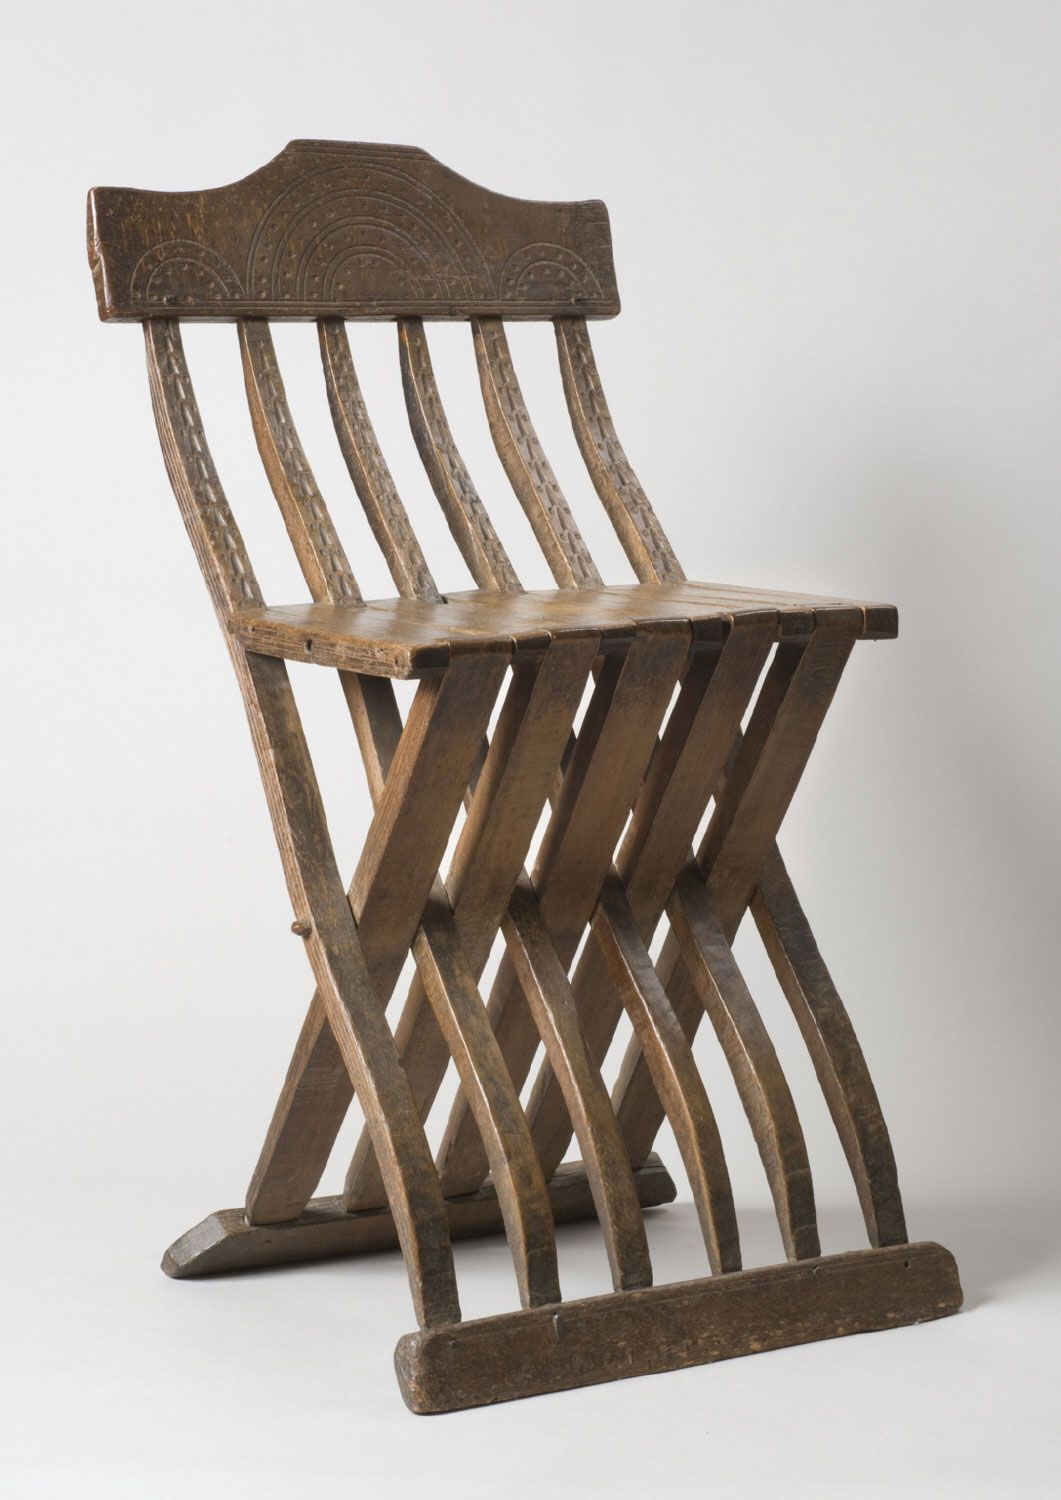 FOLDING CHAIR. Italian maker; beechwood; dimensions 31 1/2